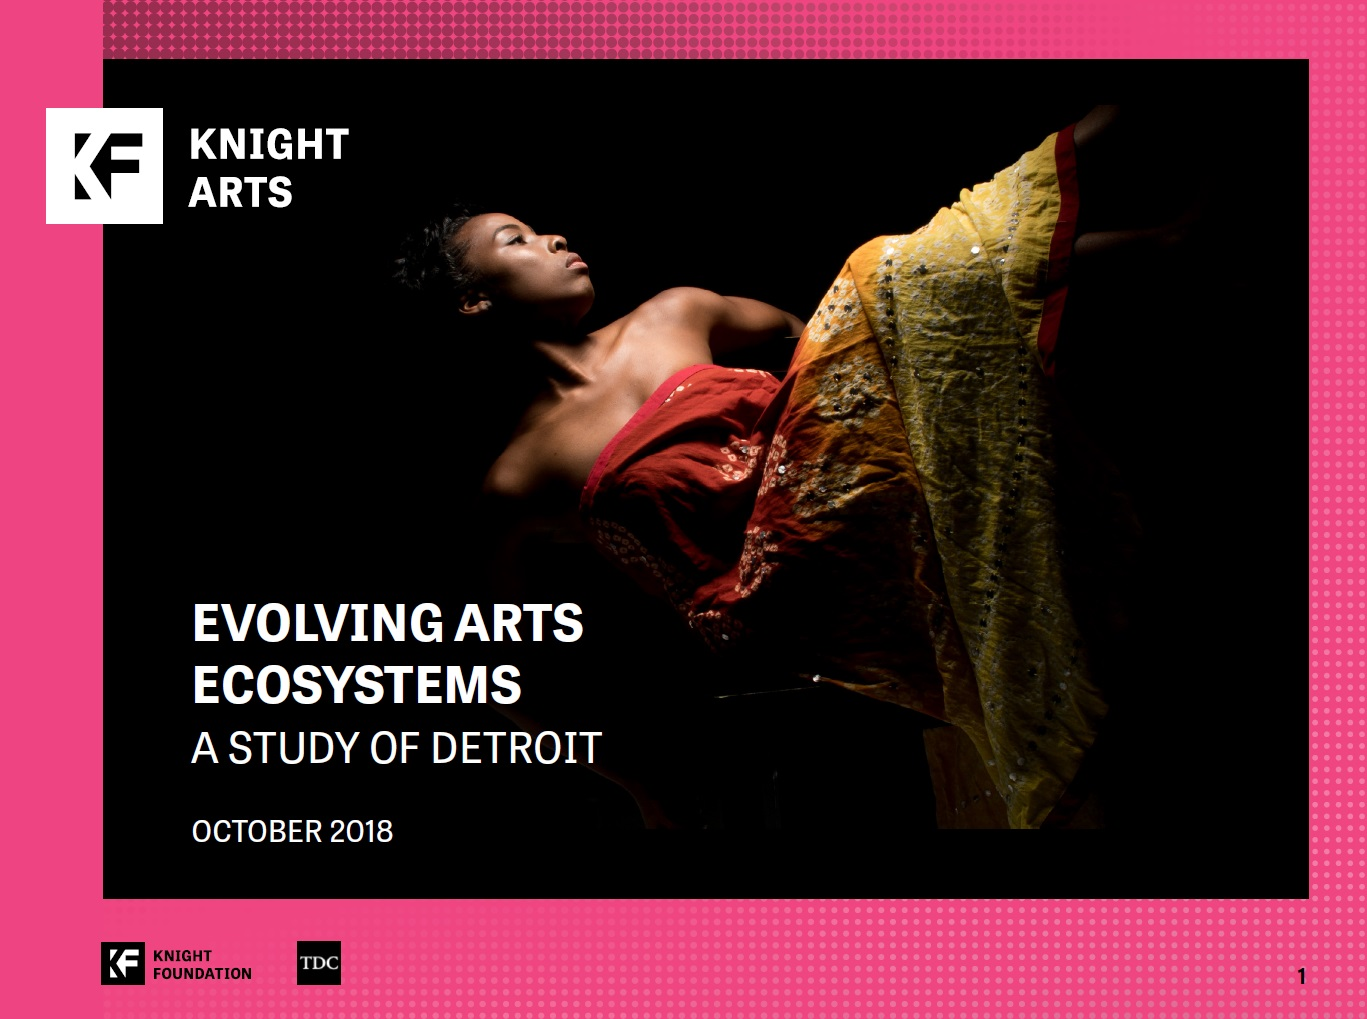 Evolving Arts Ecosystems - A Study of Detroit